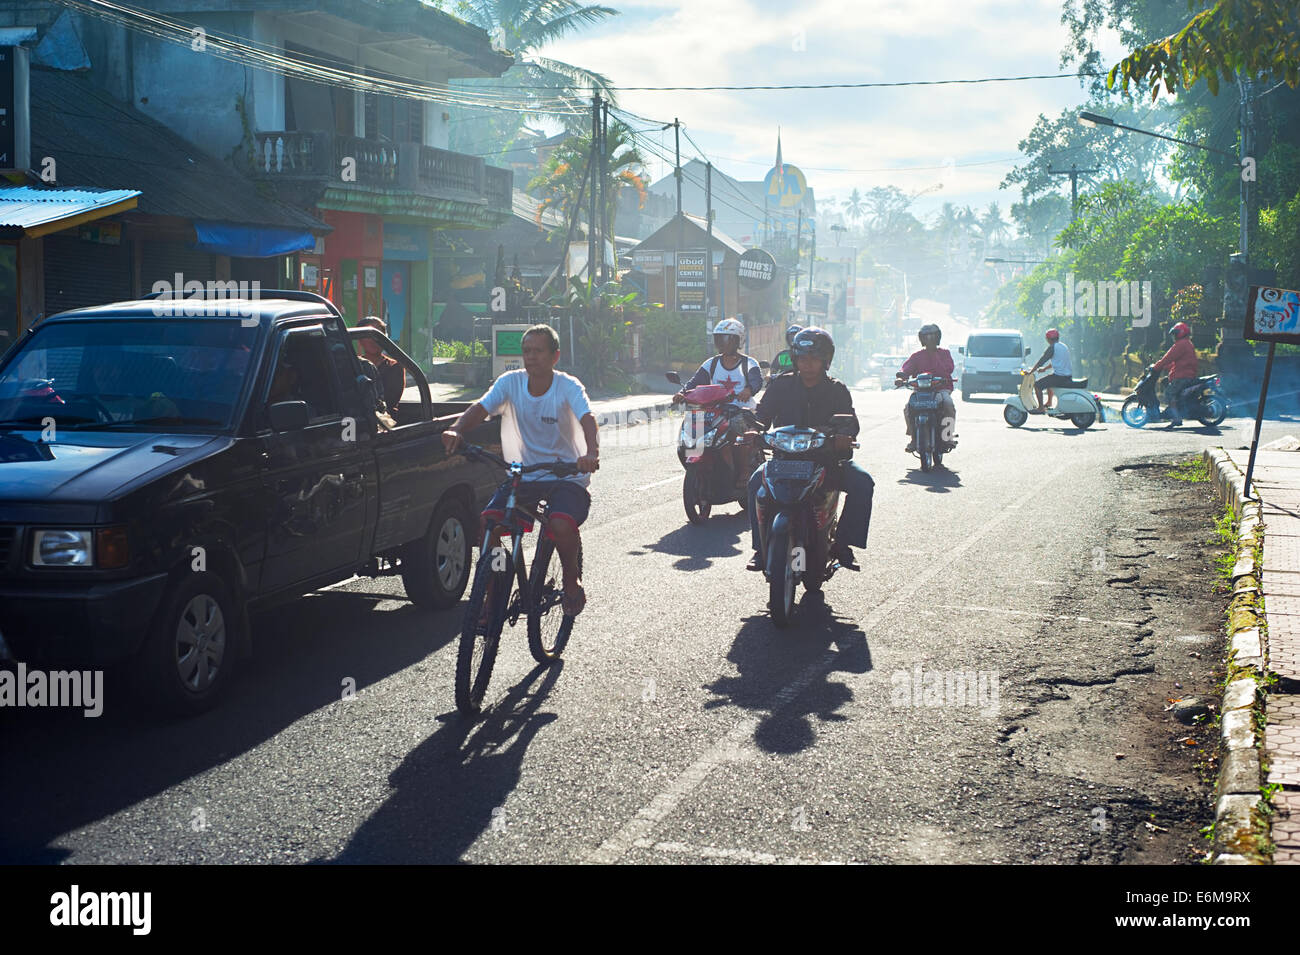 Traffic on the Ubud road during rush hour. - Stock Image